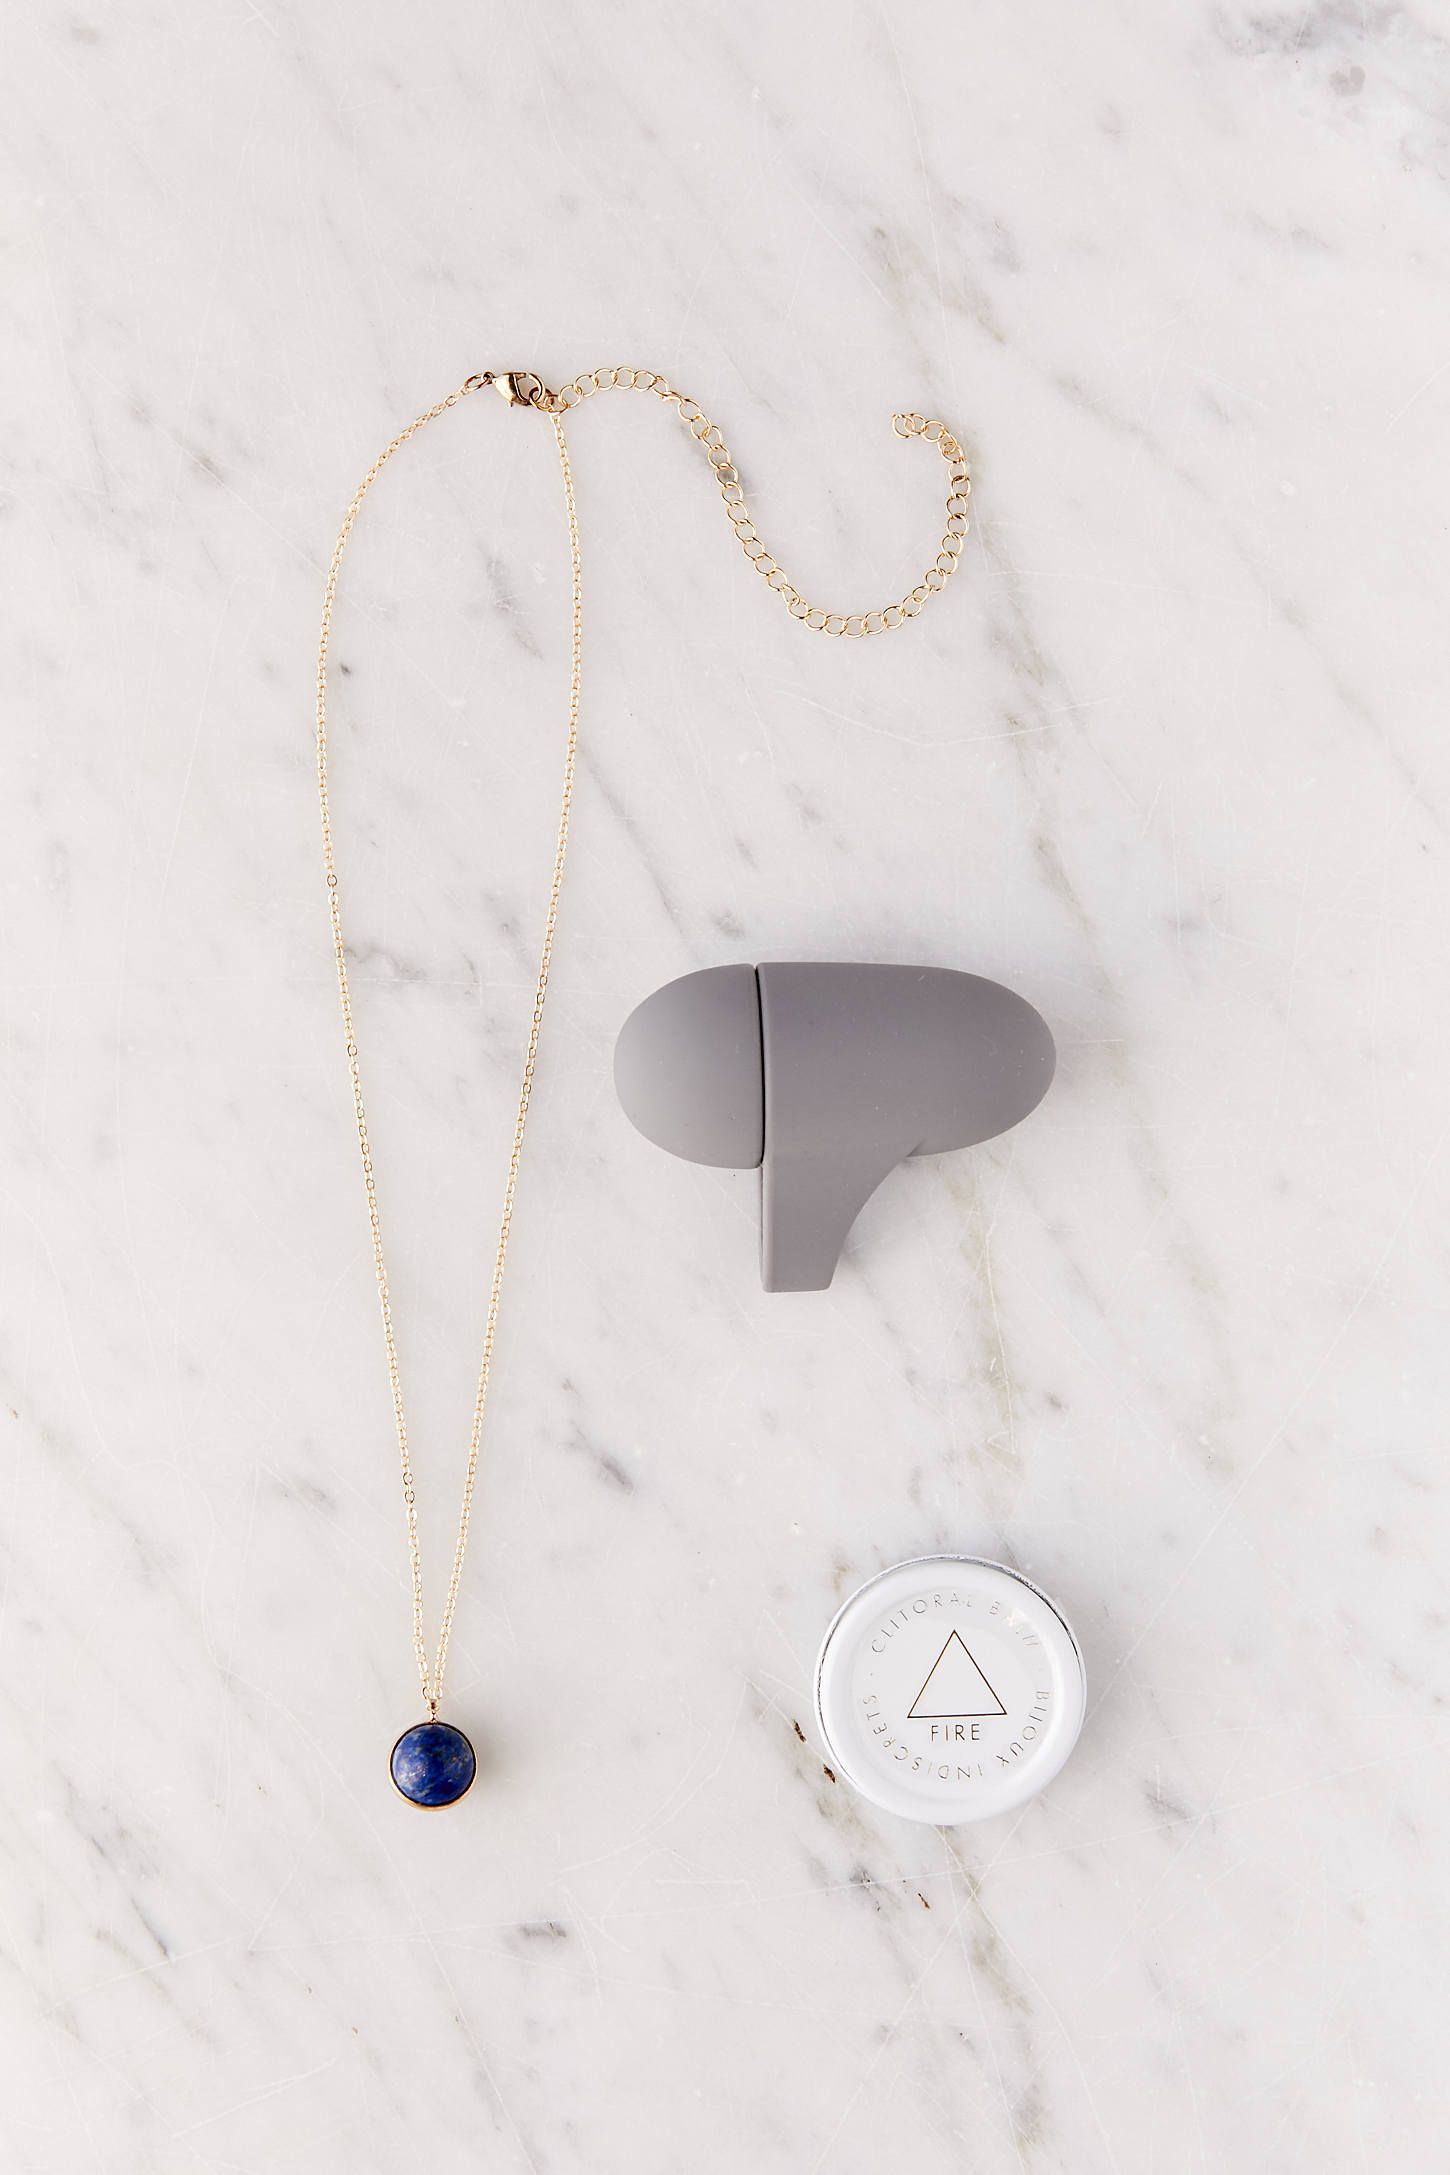 Mini Horoscope Gift Set Bijoux Indiscrets Urban Outfitters $40.00 SHOP IT Feel connected to your inner self with this special horoscope-inspired gift set featuring a petite vibrator, a personalized gemstone necklace, and a gentle warming balm. She'll thank you later.